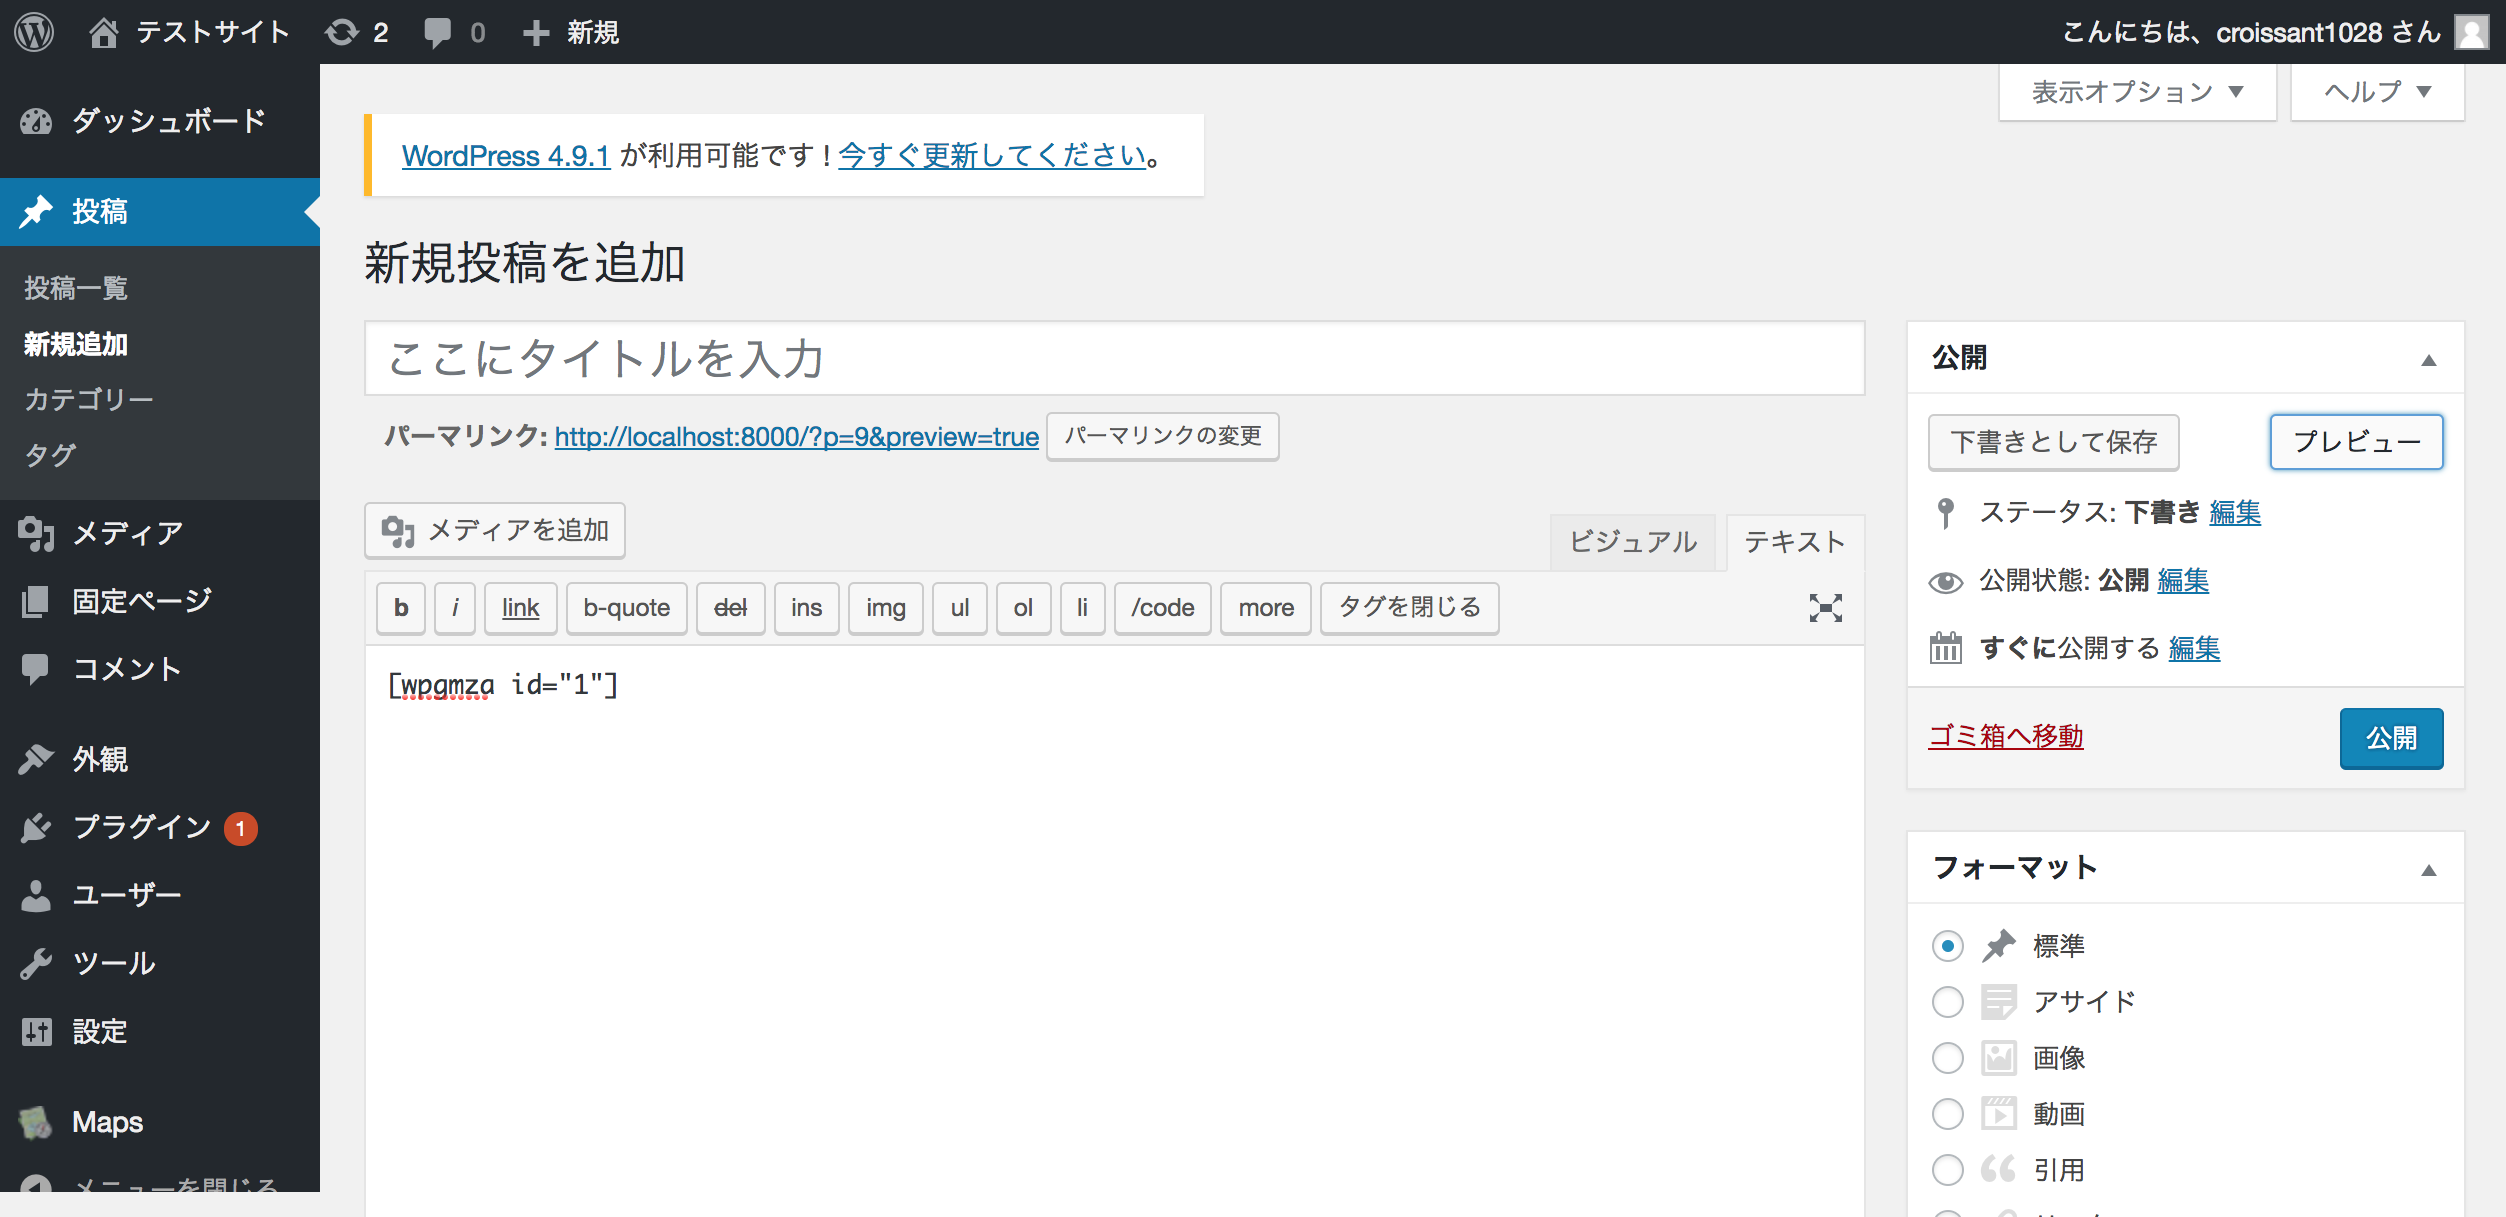 FireShot_Capture_13_-_新規投稿を追加_‹_テストサイト_—_WordPress_-_http___localhost_8000_wp-admin_post-new_php.png